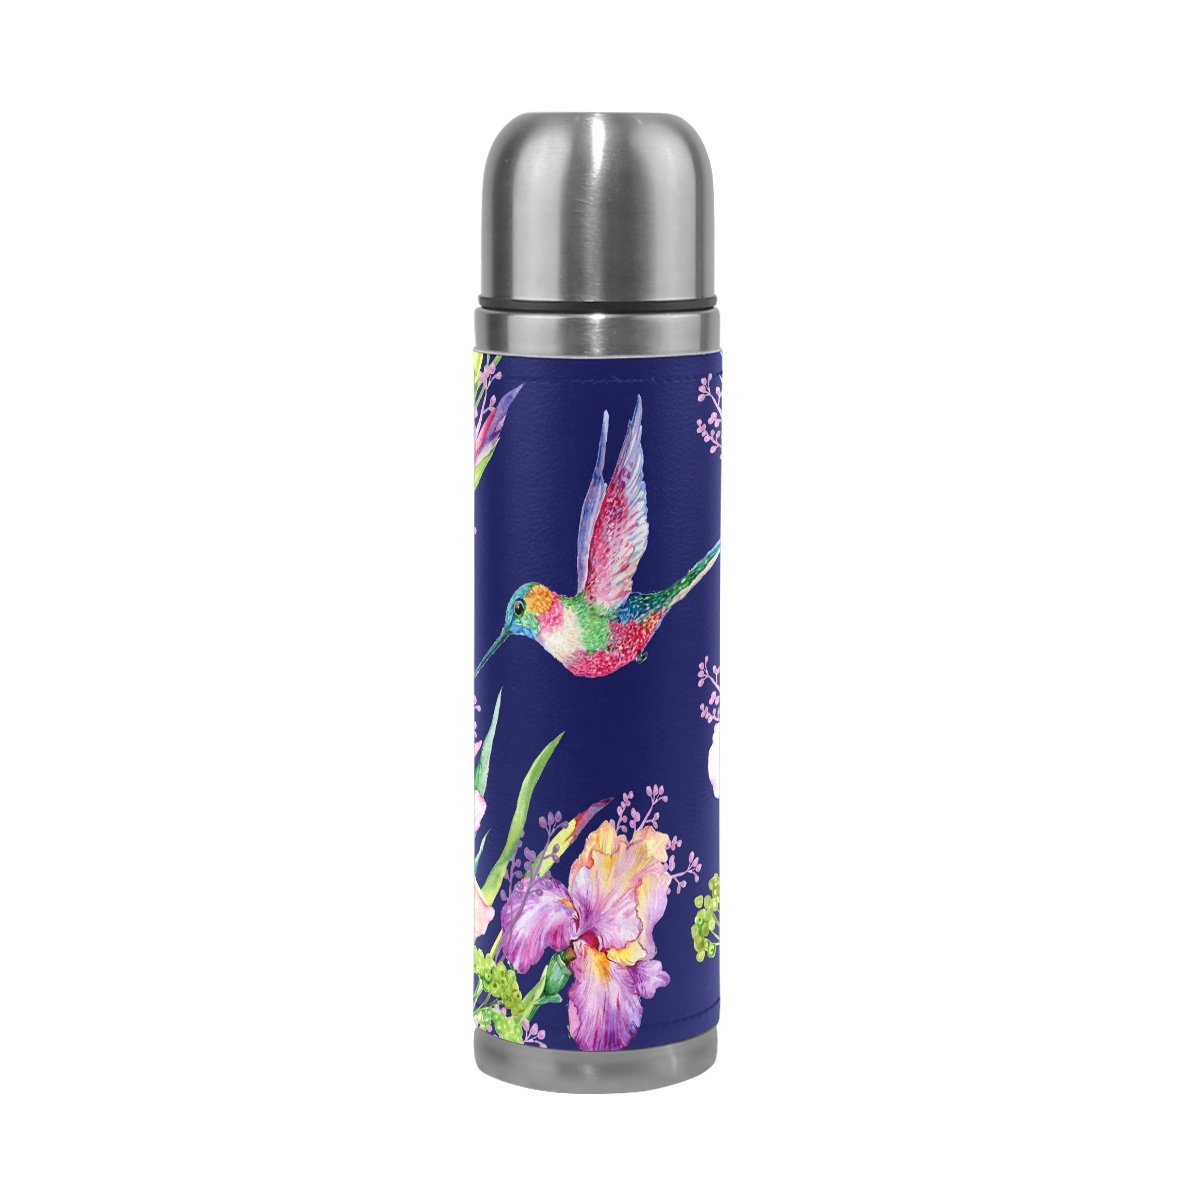 JSTEL Water Bottle Vacuum Insulated Leak Proof Double Vacuum Bottle for Hot Coffee or Cold Tea + Drink Cup Top 500ml